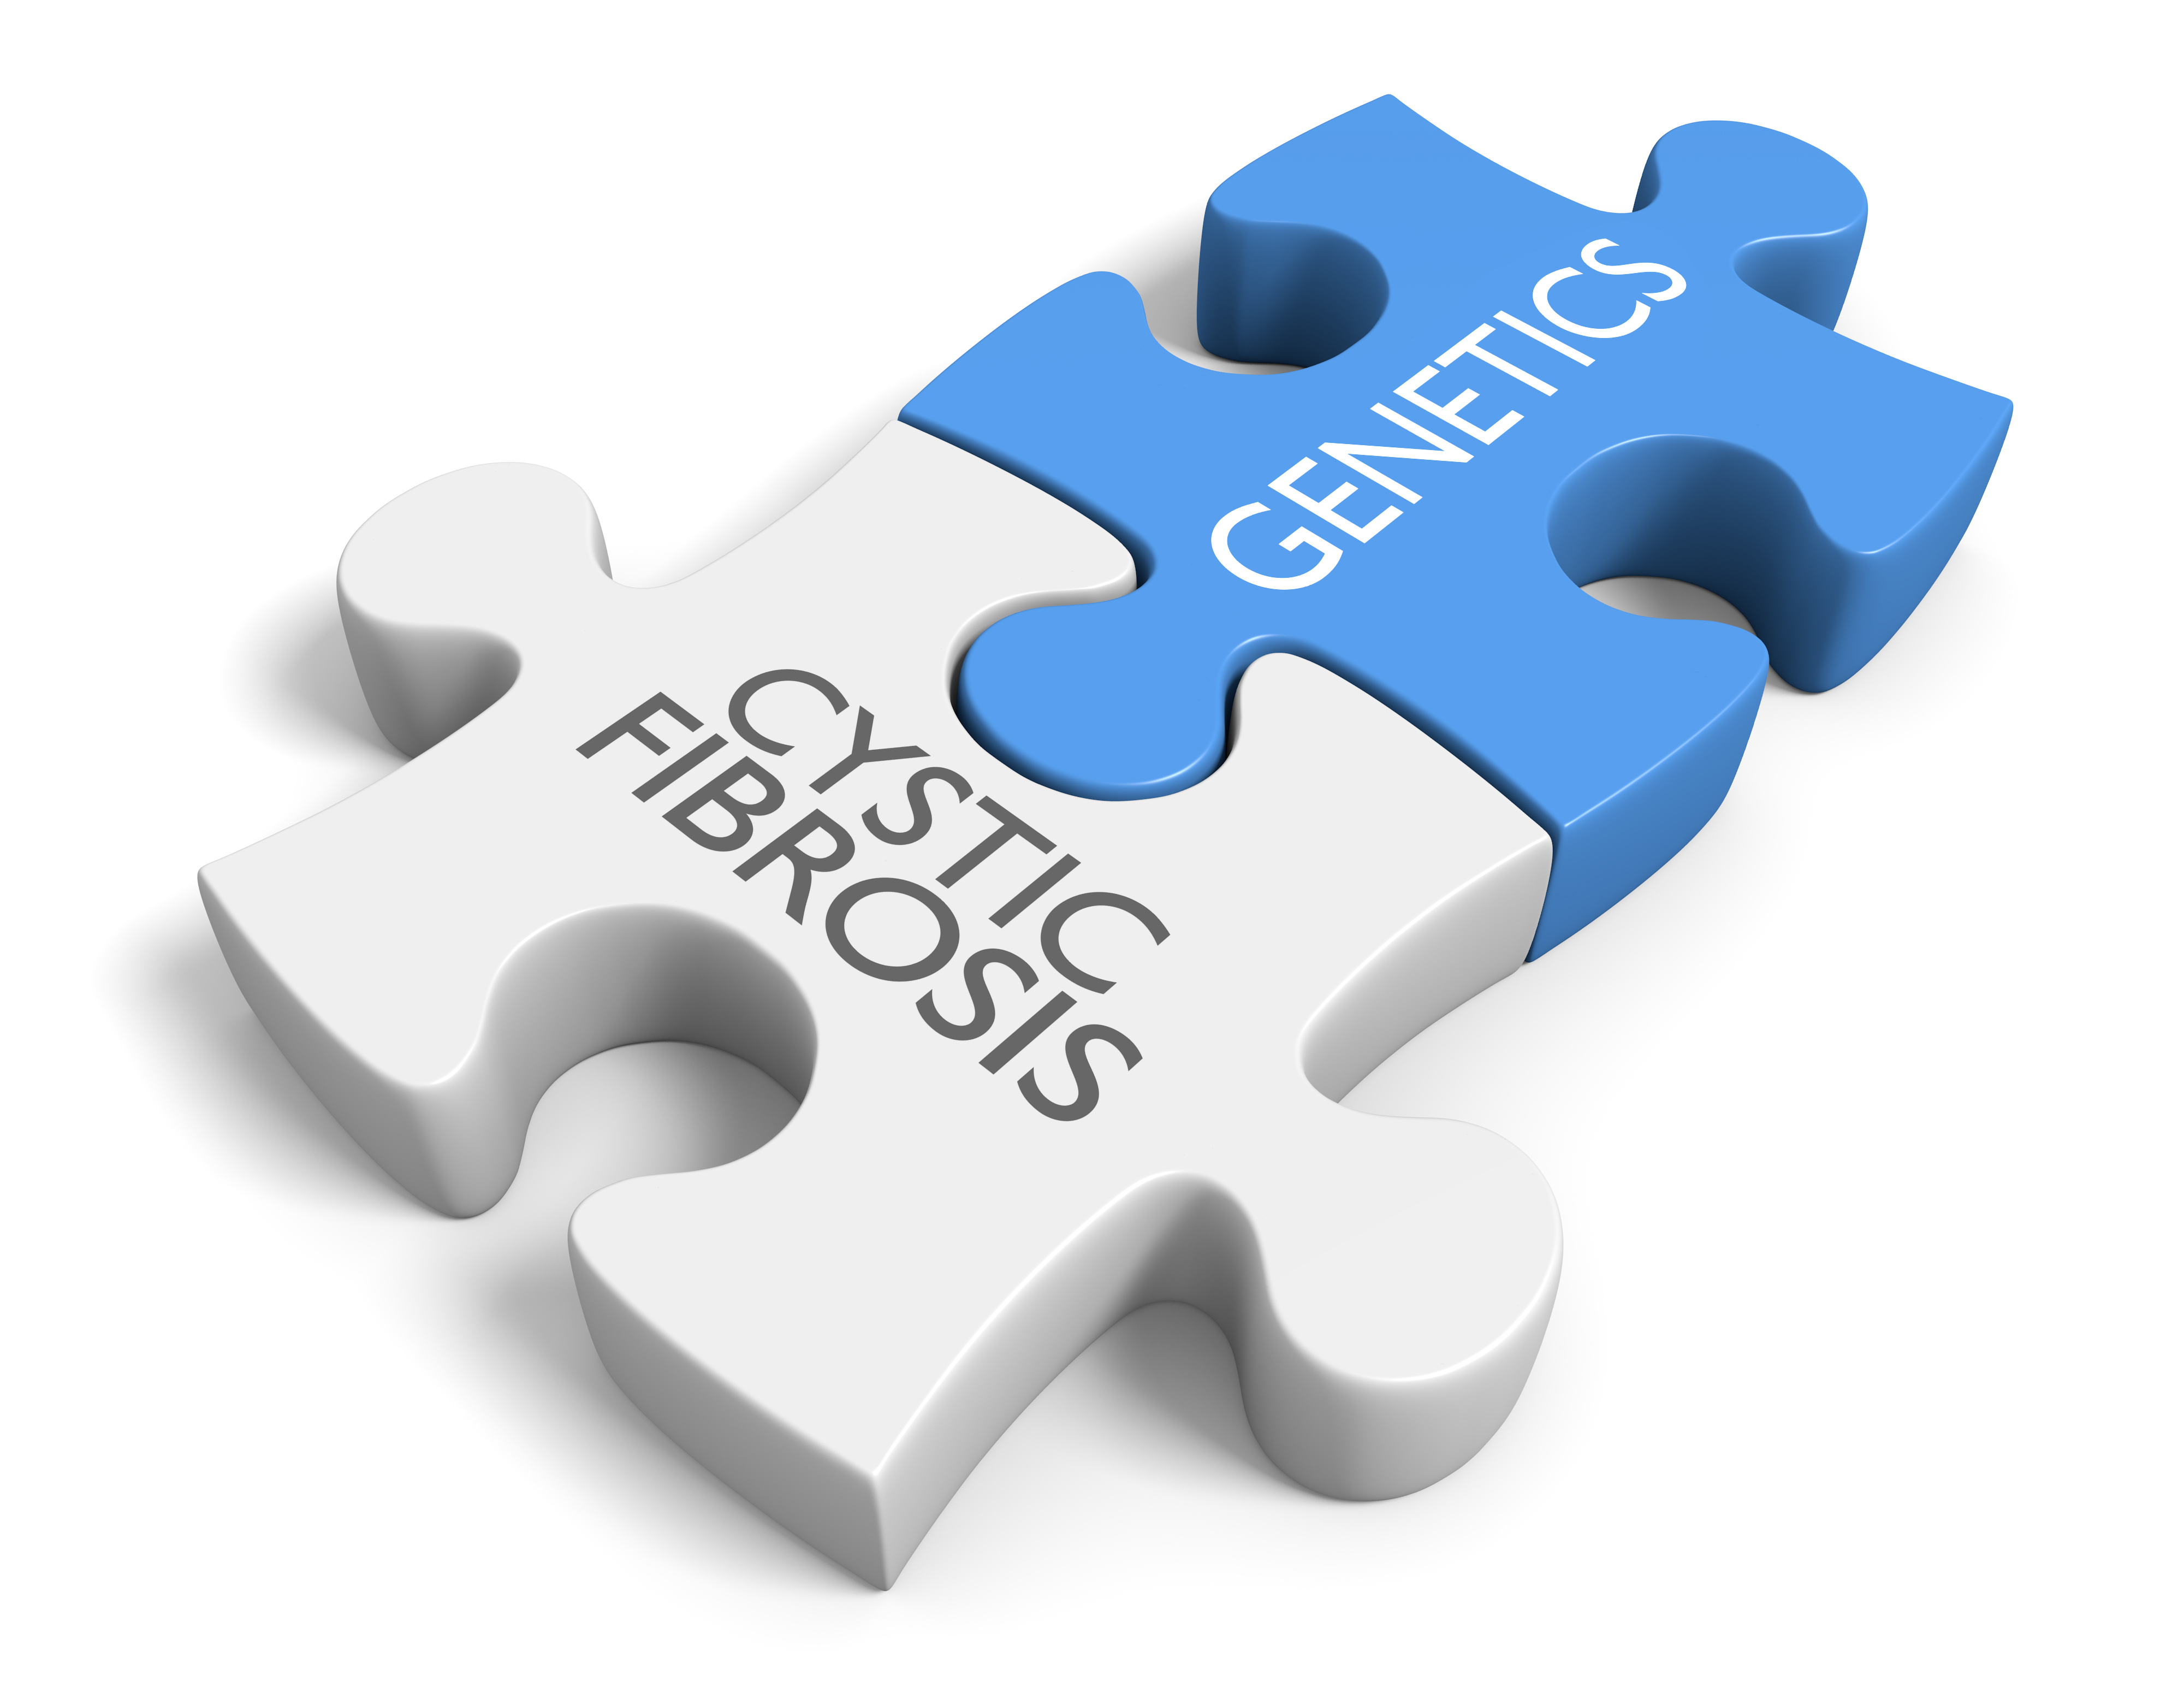 Cystic fibrosis research